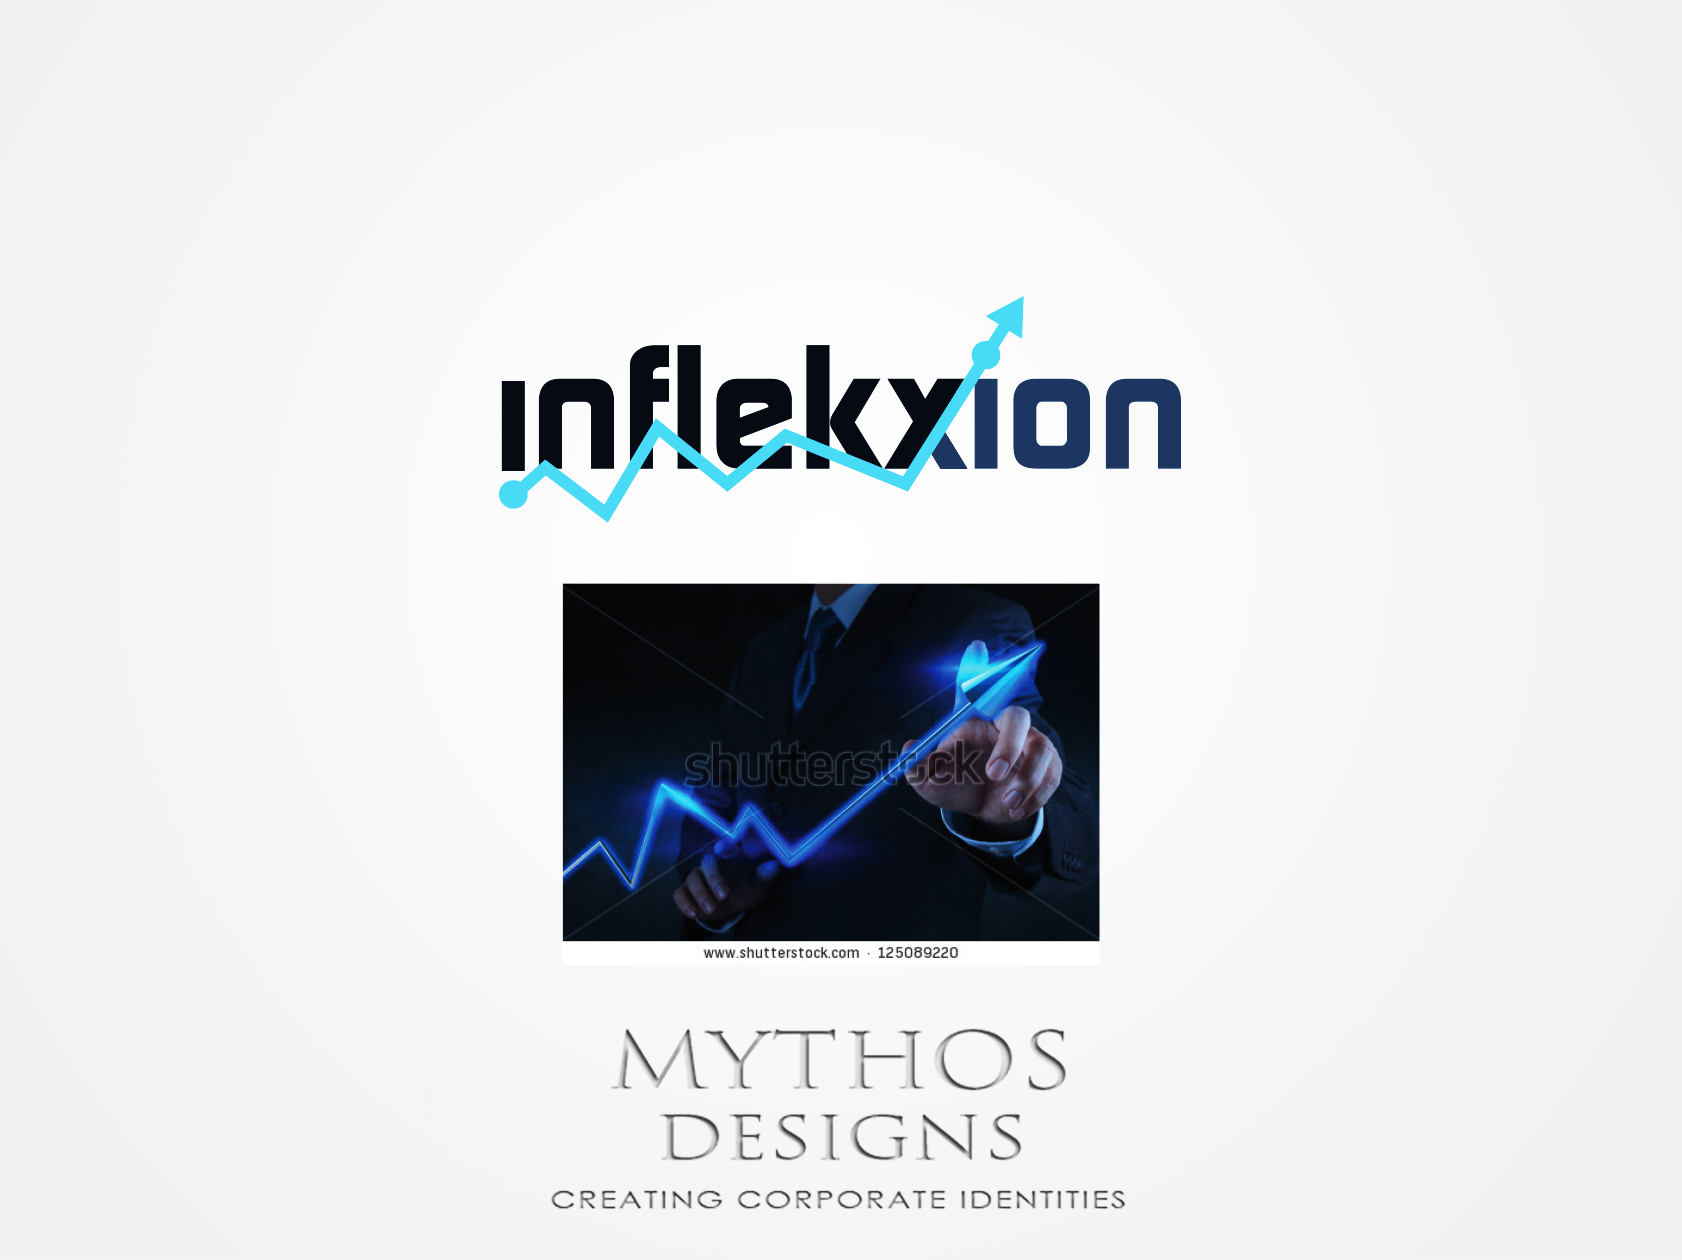 Logo Design by Mythos Designs - Entry No. 193 in the Logo Design Contest Professional Logo Design for Inflekxion.